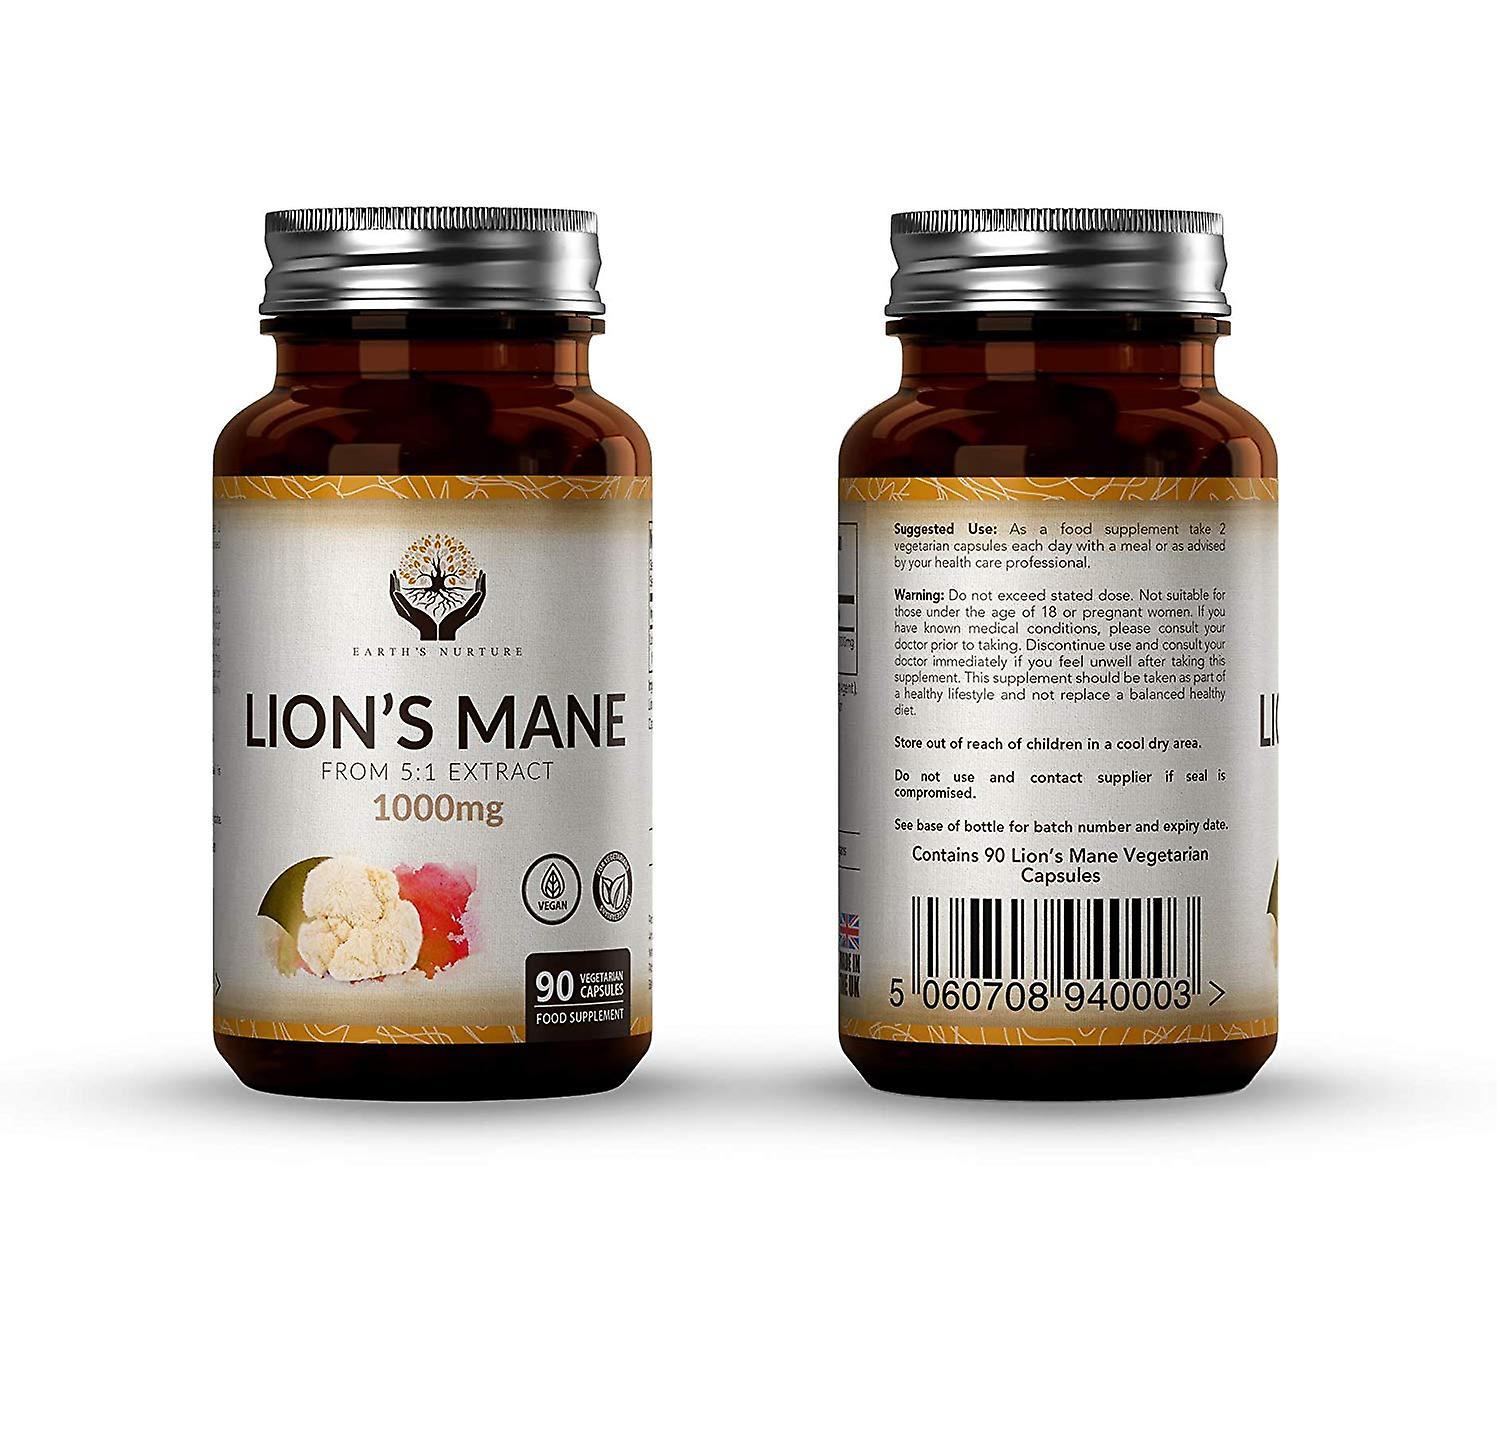 Earth's Nurture Lion's Mane Extract Capsules